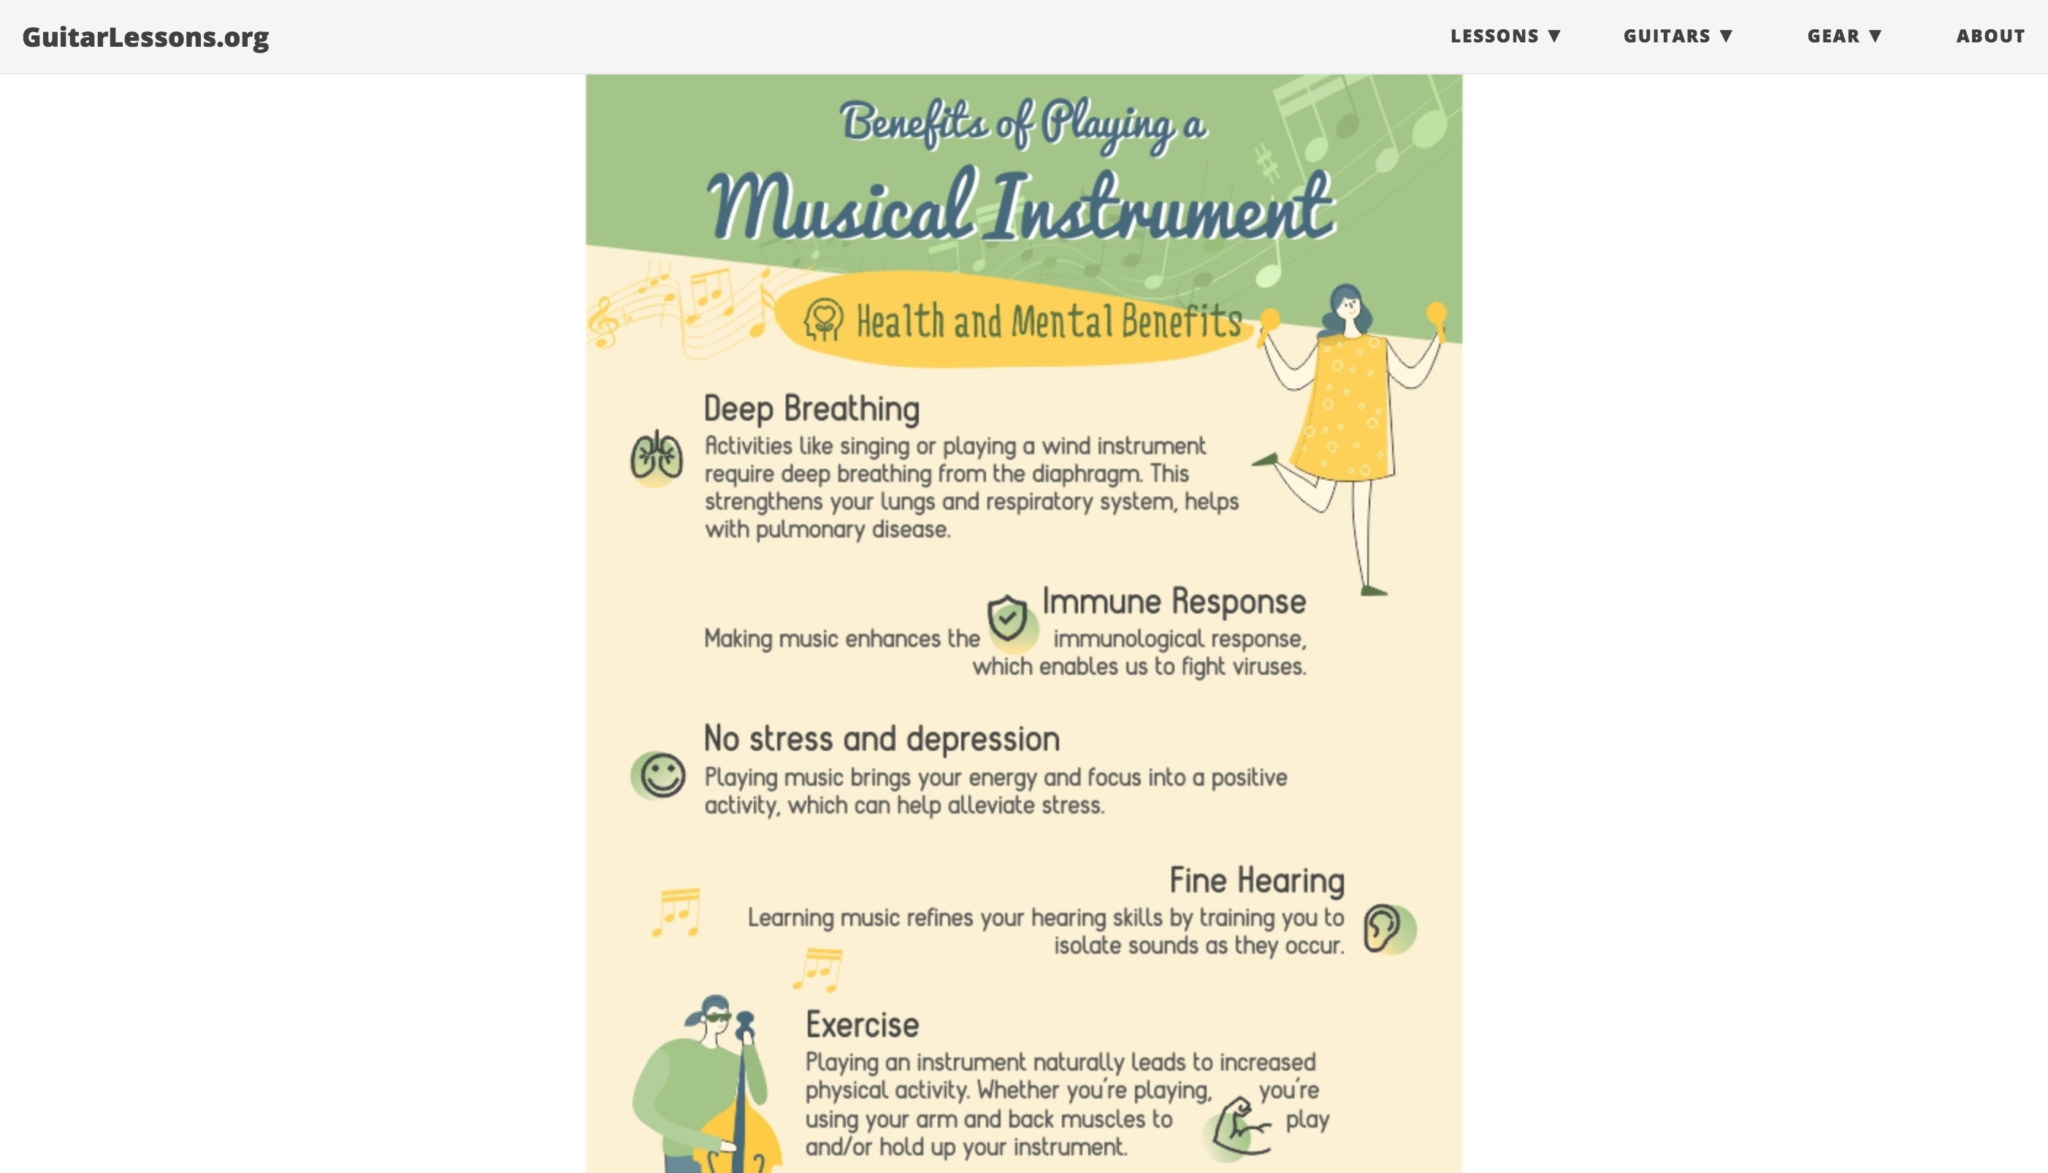 The Benefits of Playing a Musical Instrument 4